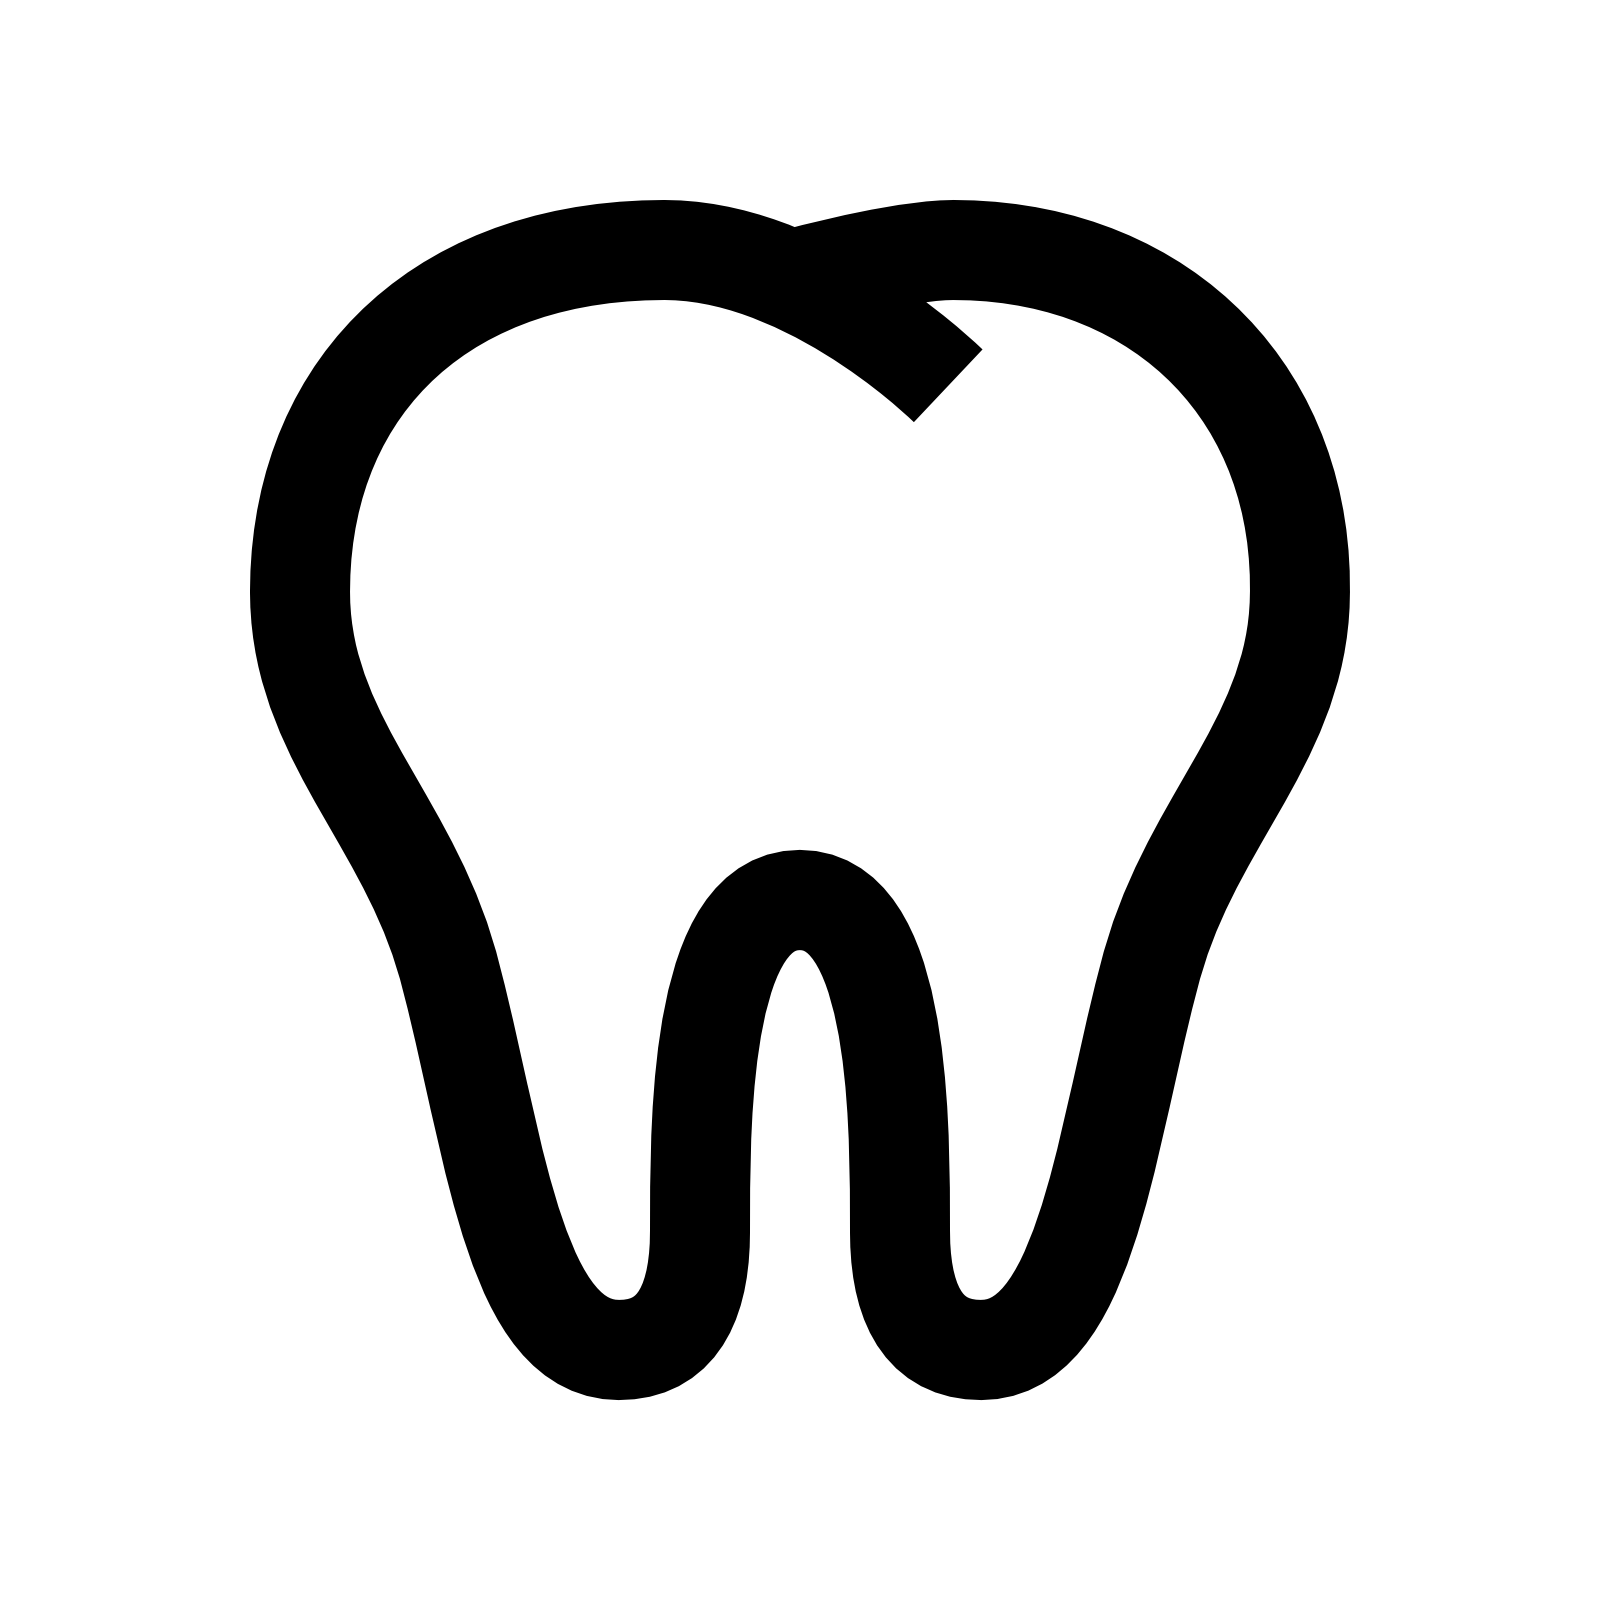 Teeth icon png. Tooth icons vector free